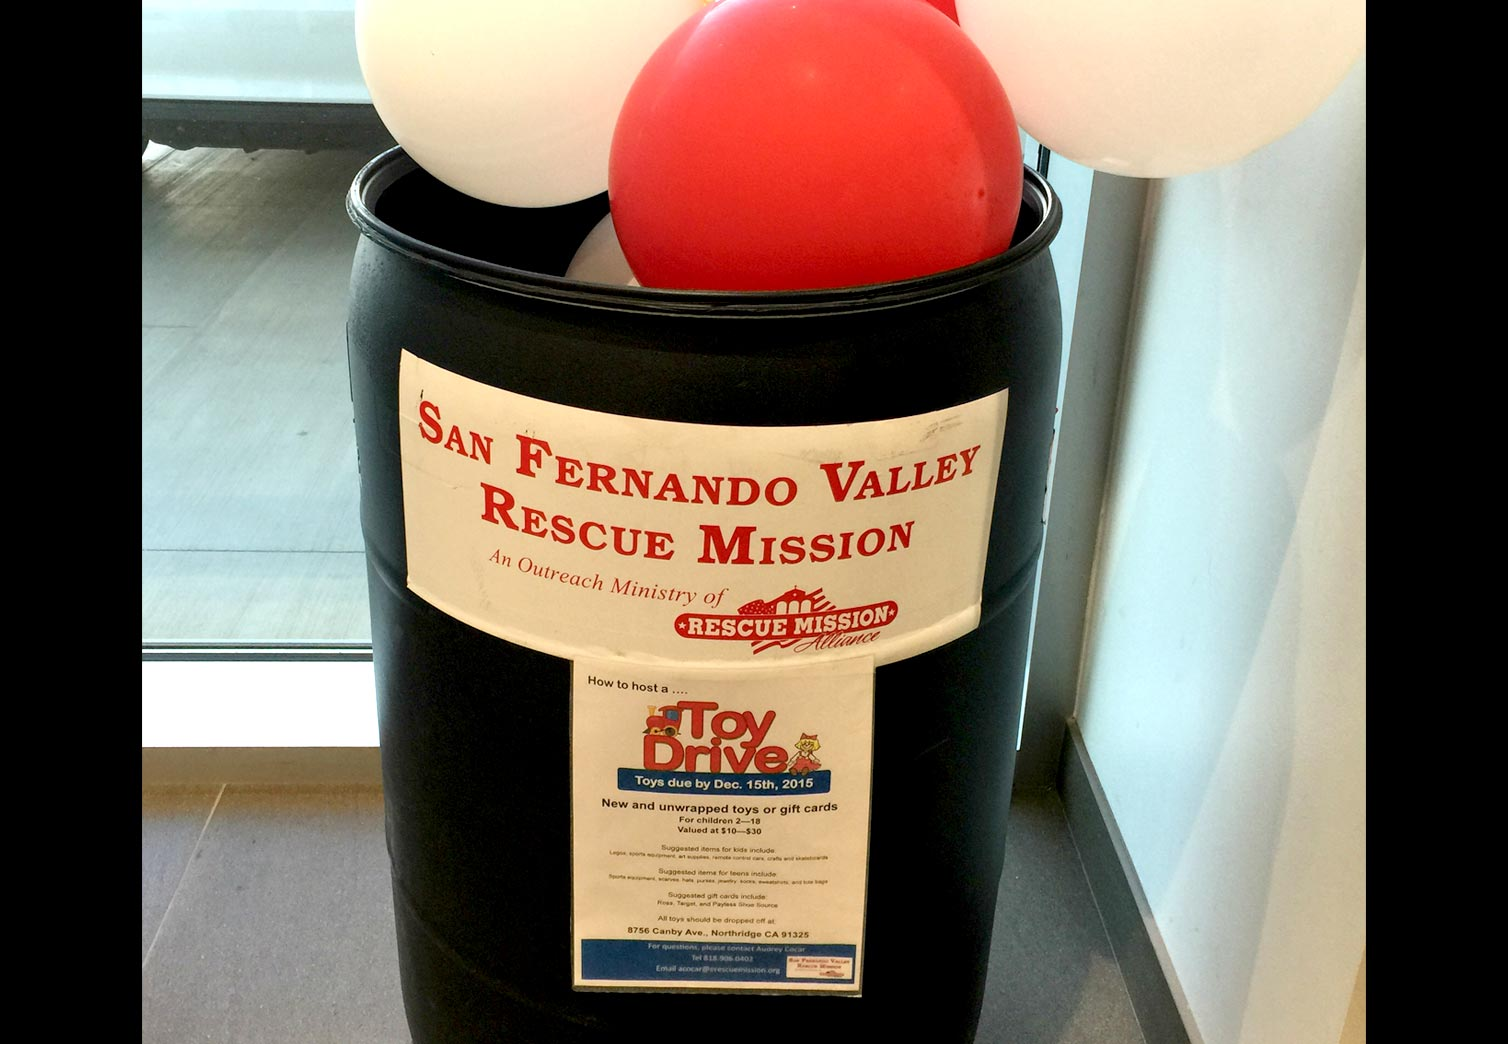 Toy Drive At Northridge Toyota serving Granada Hills - for San Fernando Valley Rescue Mission